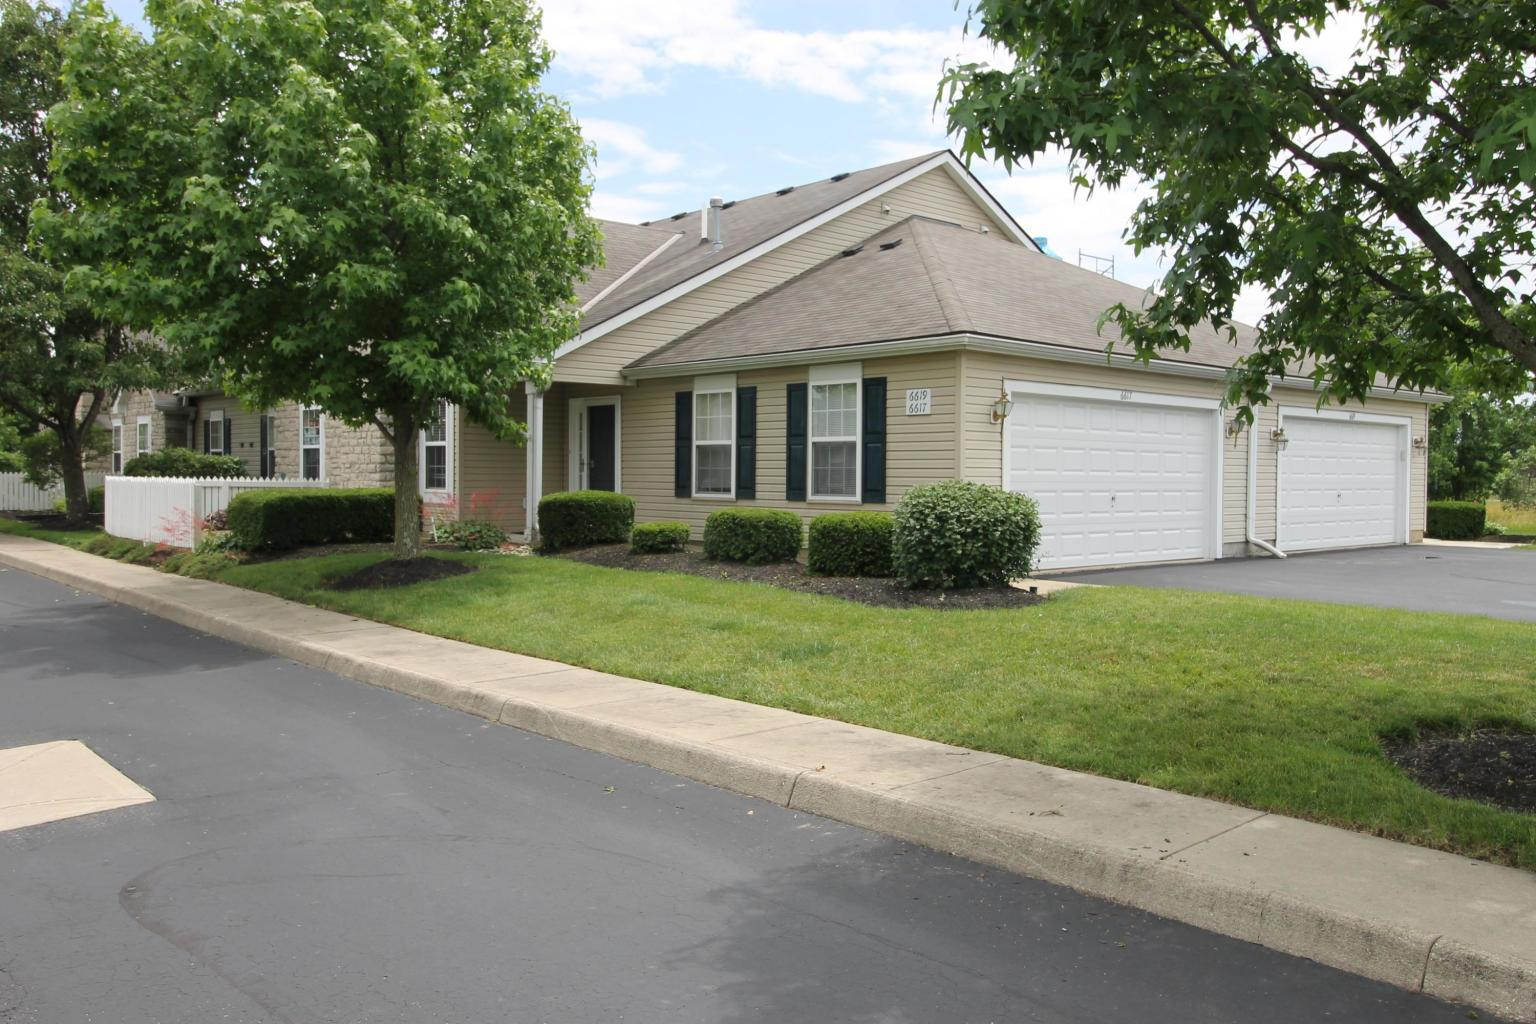 6617 Eagle Ridge, Canal Winchester <br> UNDER CONTRACT